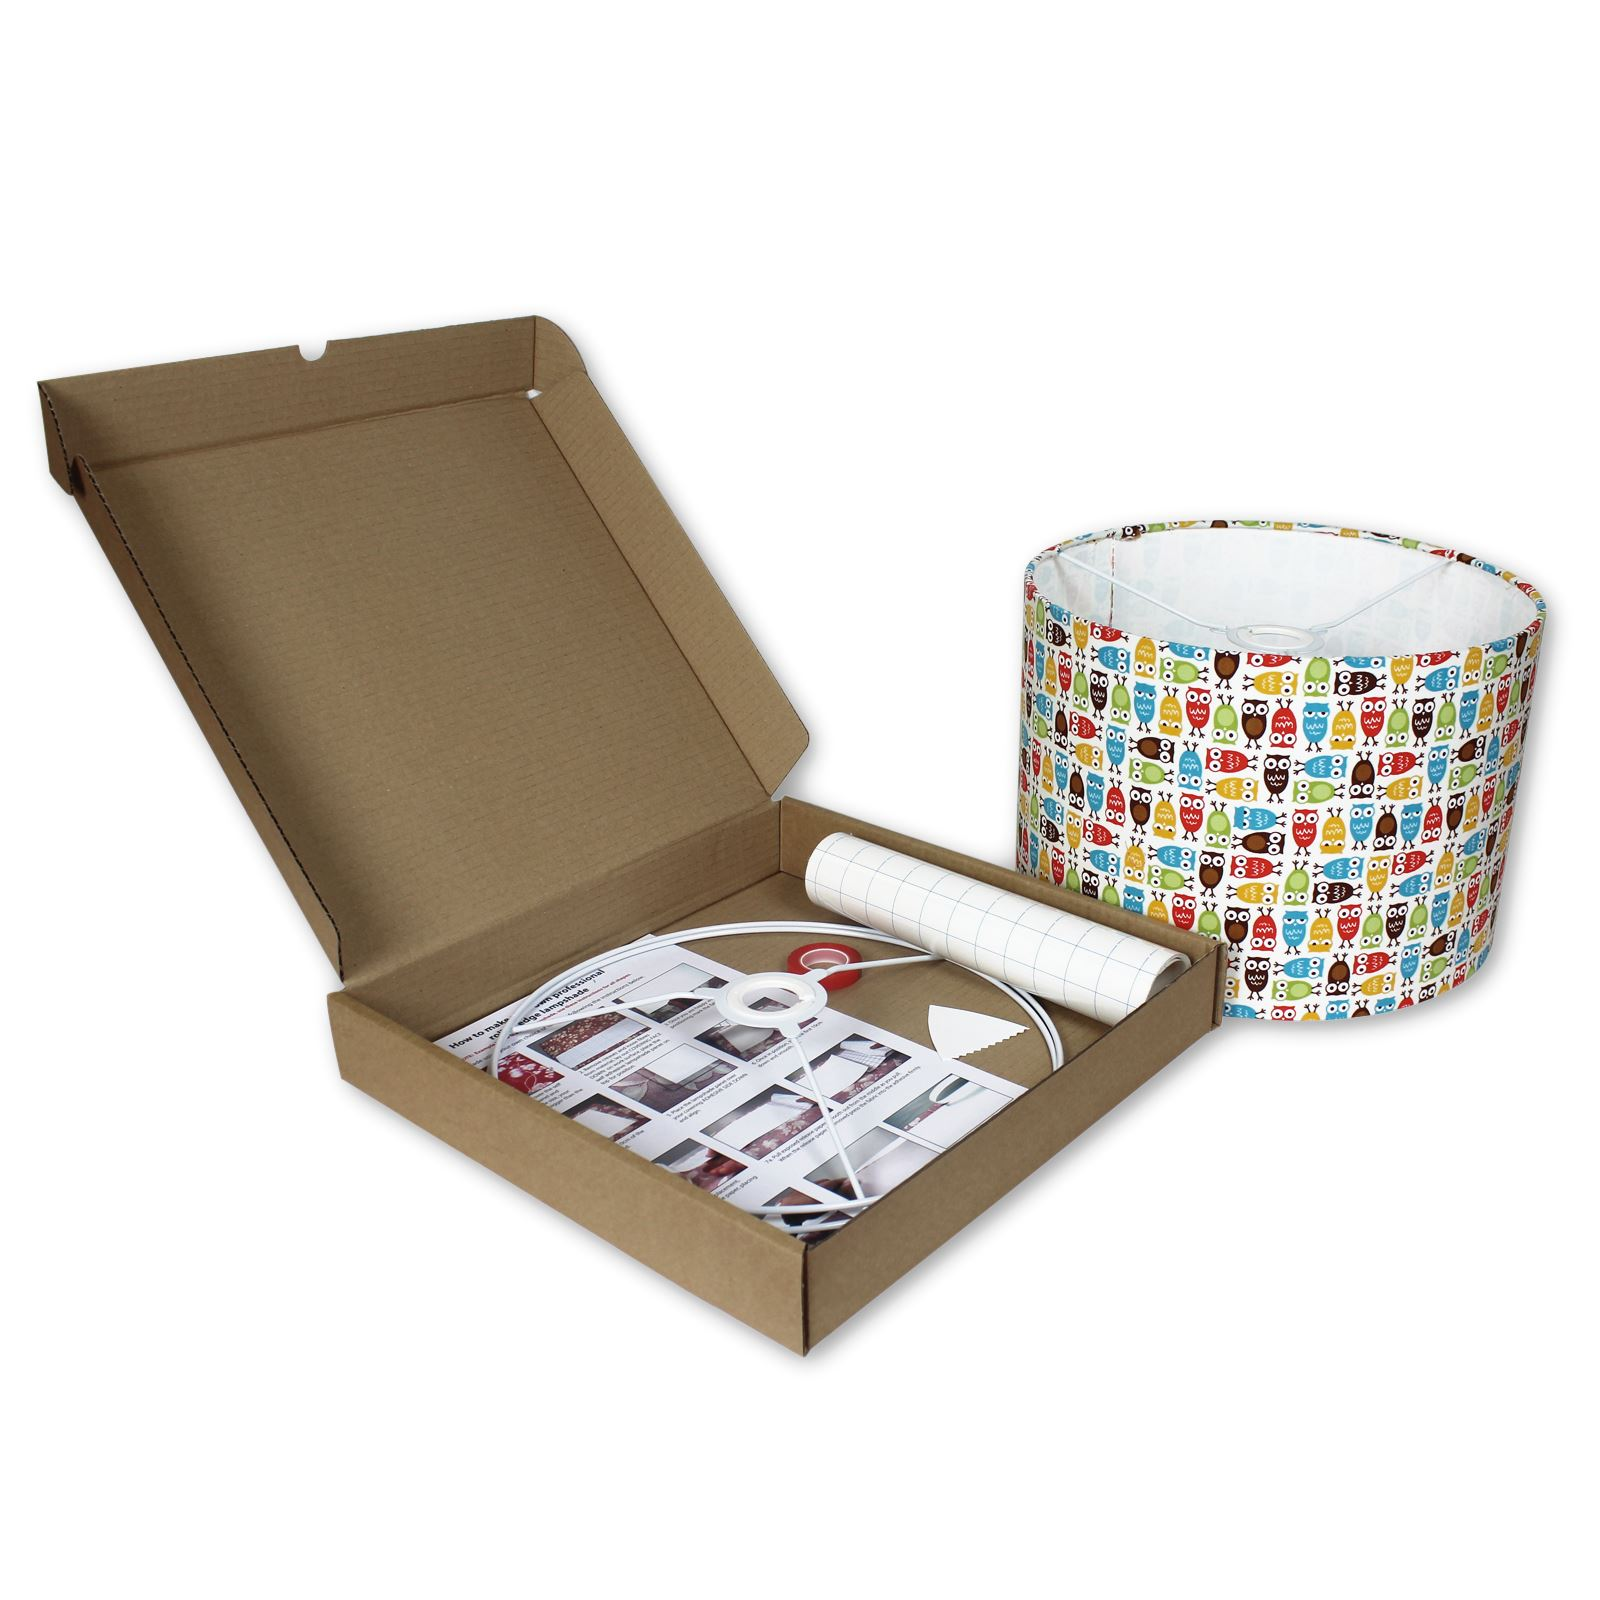 Lampshade Kits - Make Your Own Lampshades - 20cm,30cm,40cm ...